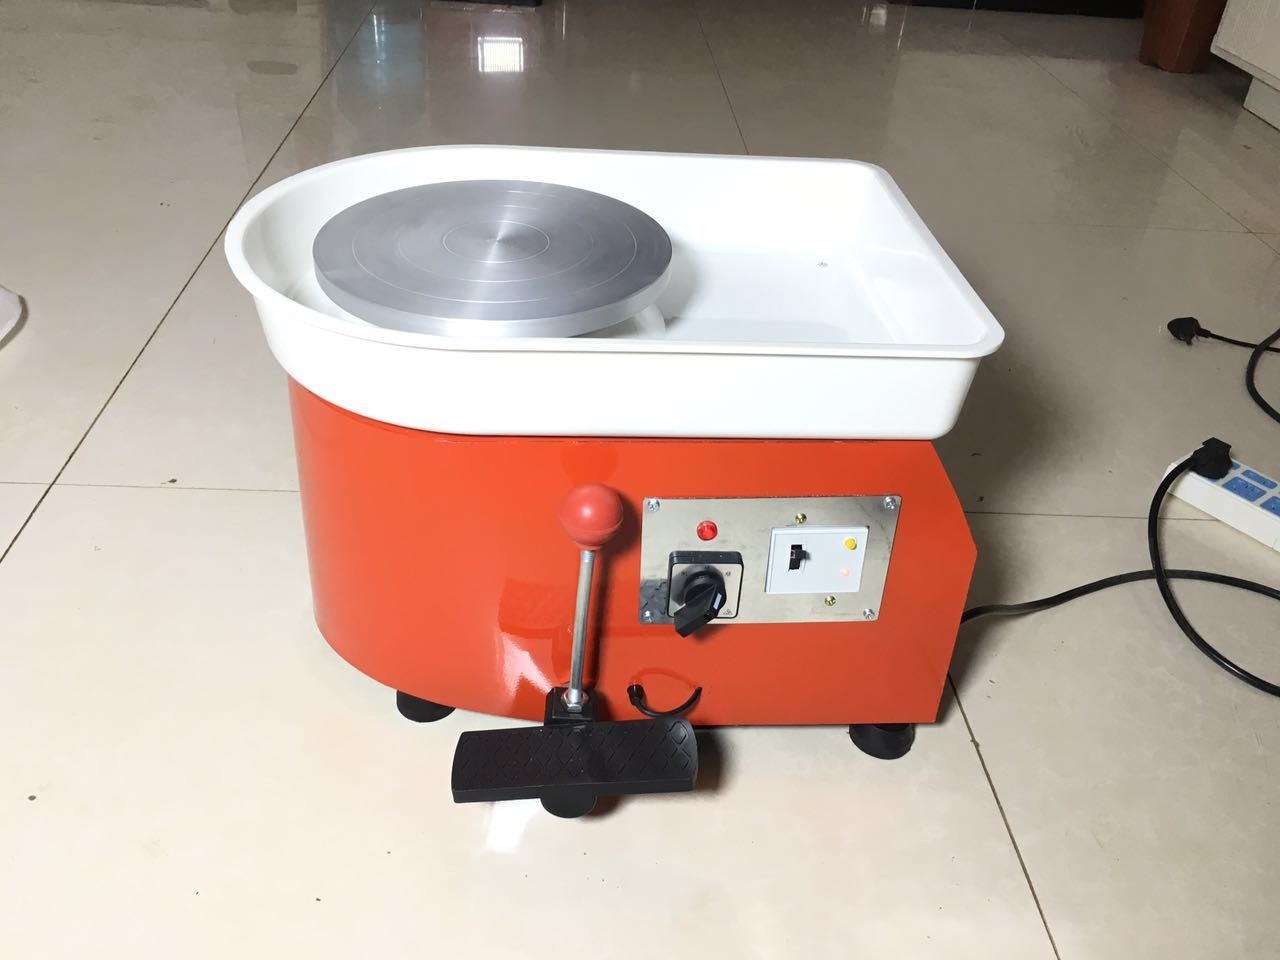 25cm Pottery Forming Machine Pottery Wheel Ceramic Machine Ceramics Clay Machine 110V/220V